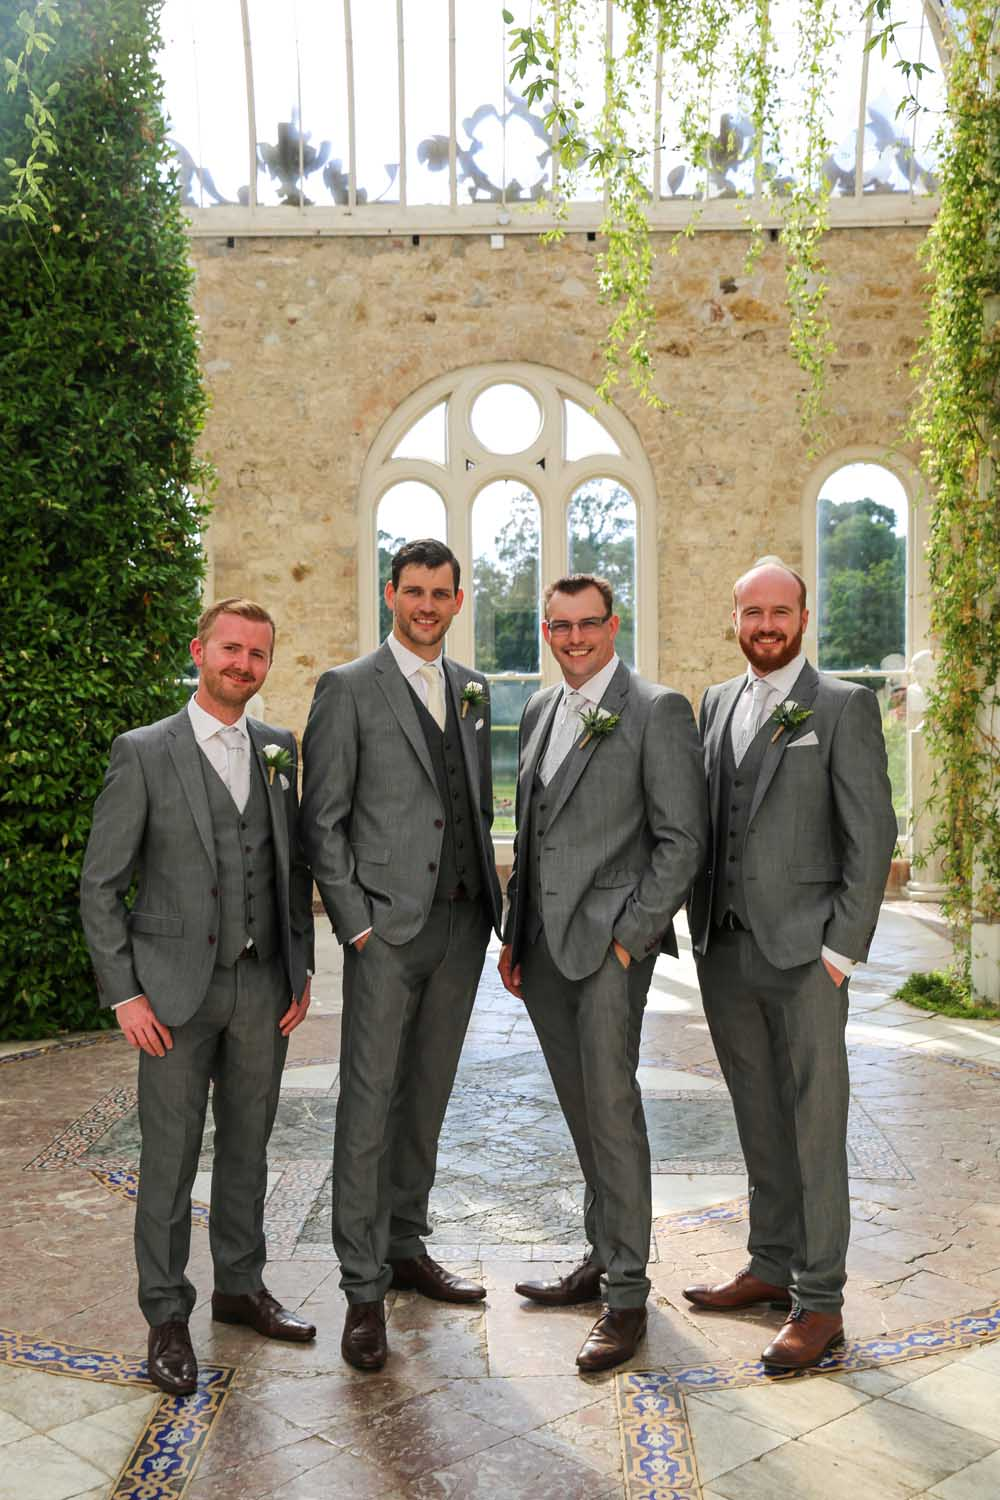 Groomsmen photographed at Killruddery House